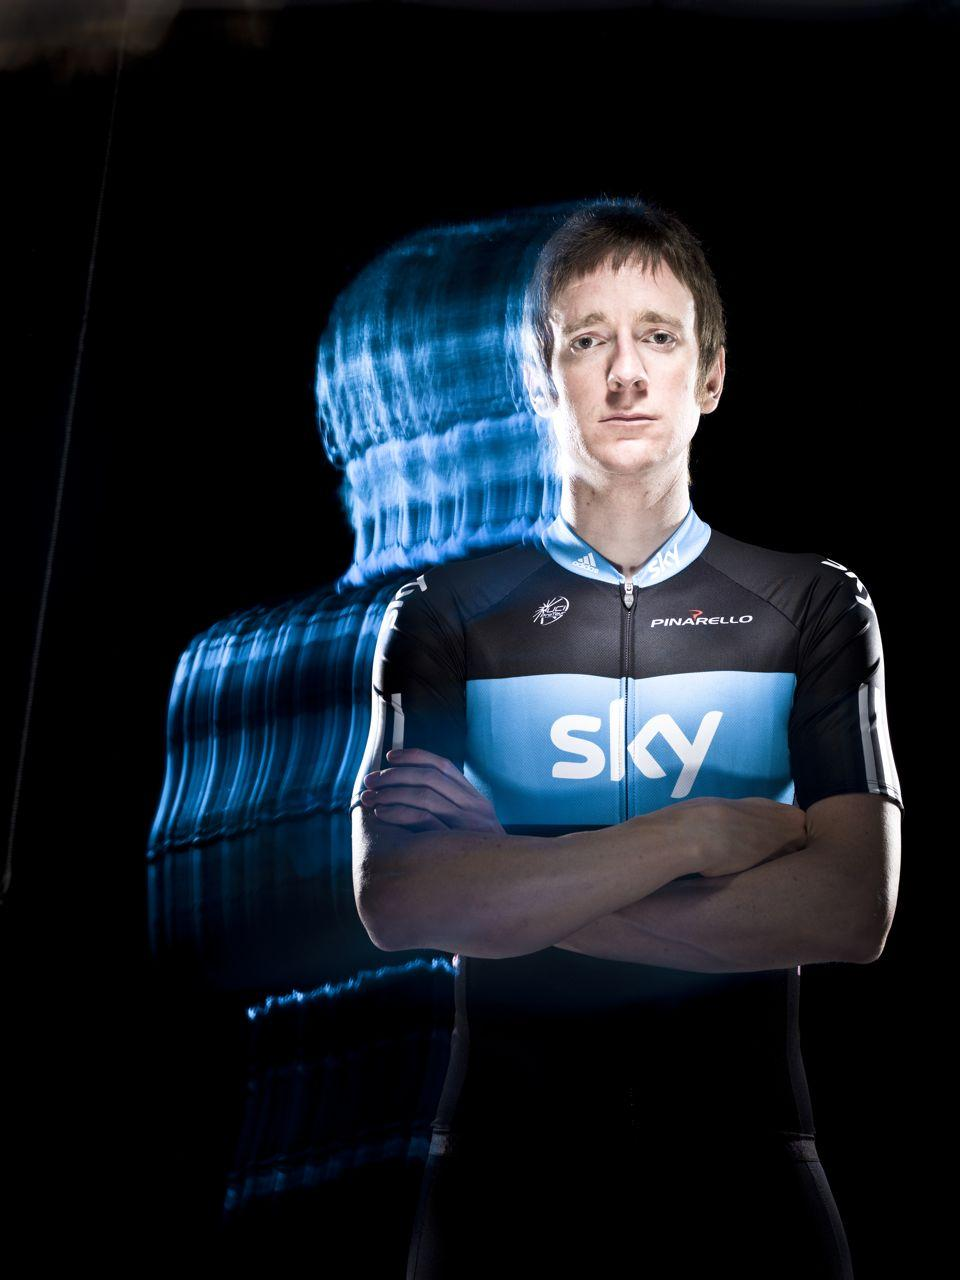 Team Sky 2010 Bradley_Wiggins__2630